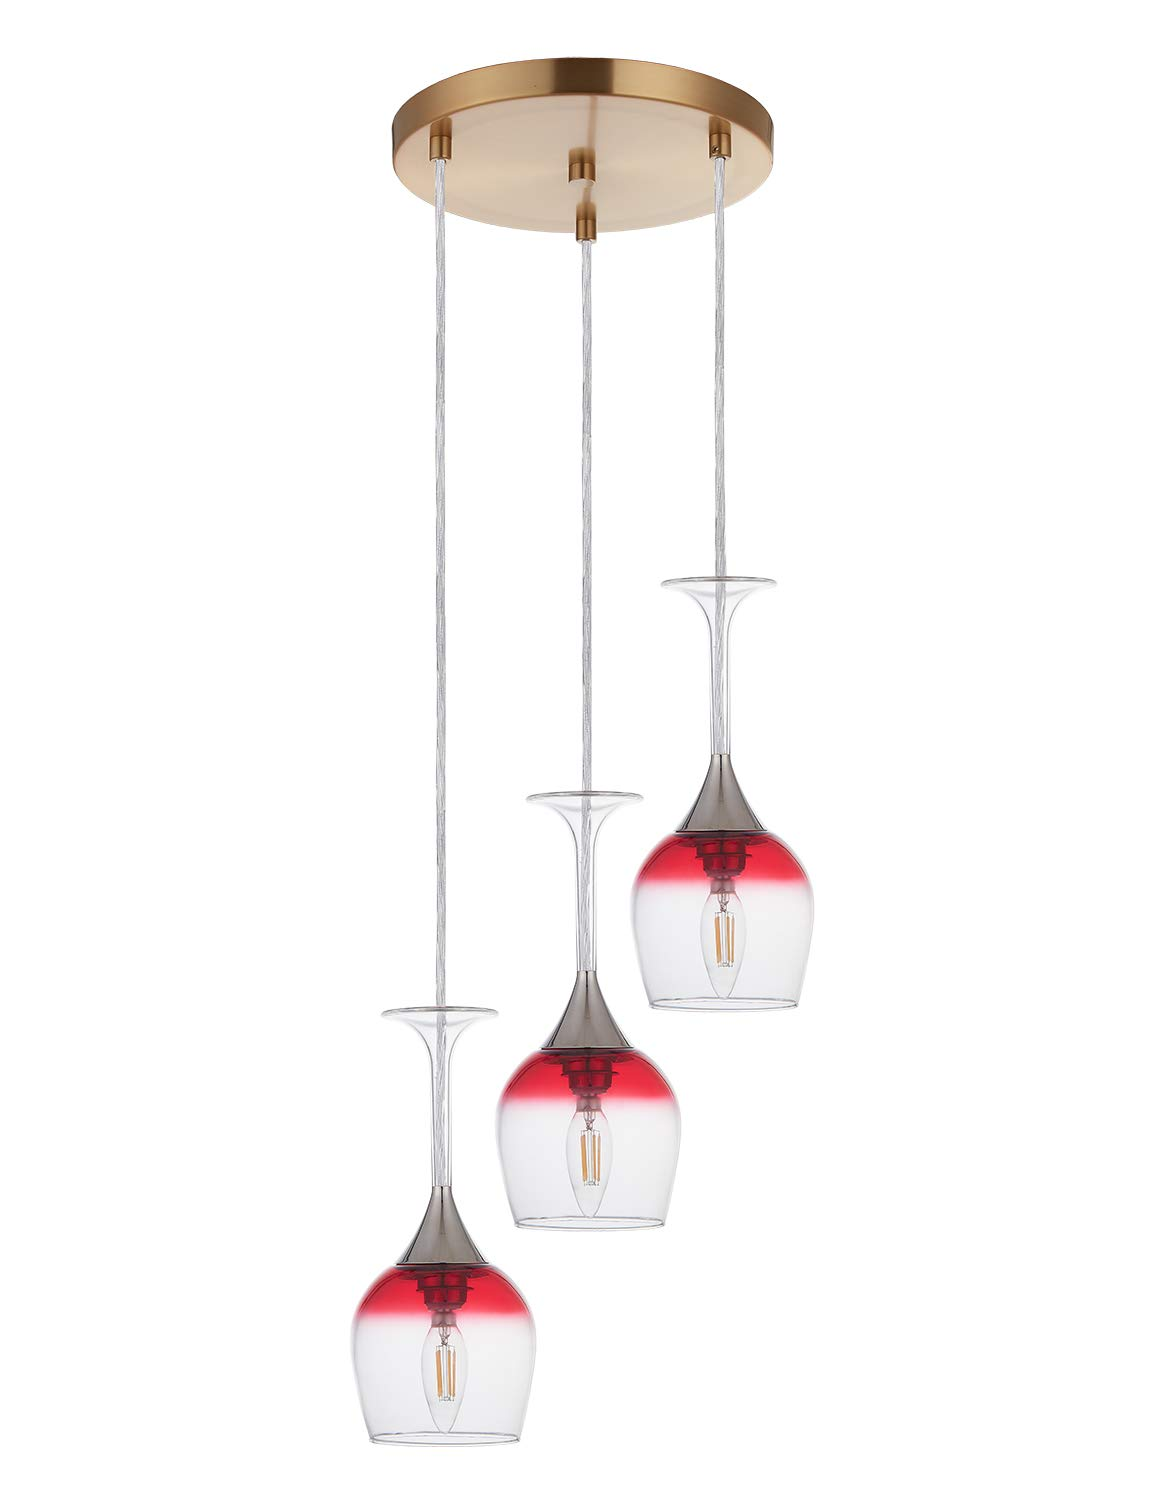 Doraimi 3 Light Wine Glass Chandelier with Antique Brass Finish, Modern Pendant Ceiling Lighting Fixture Patented Product for Dining Room Bar Cafe Kitchen Island Living Room, LED Bulb not Include